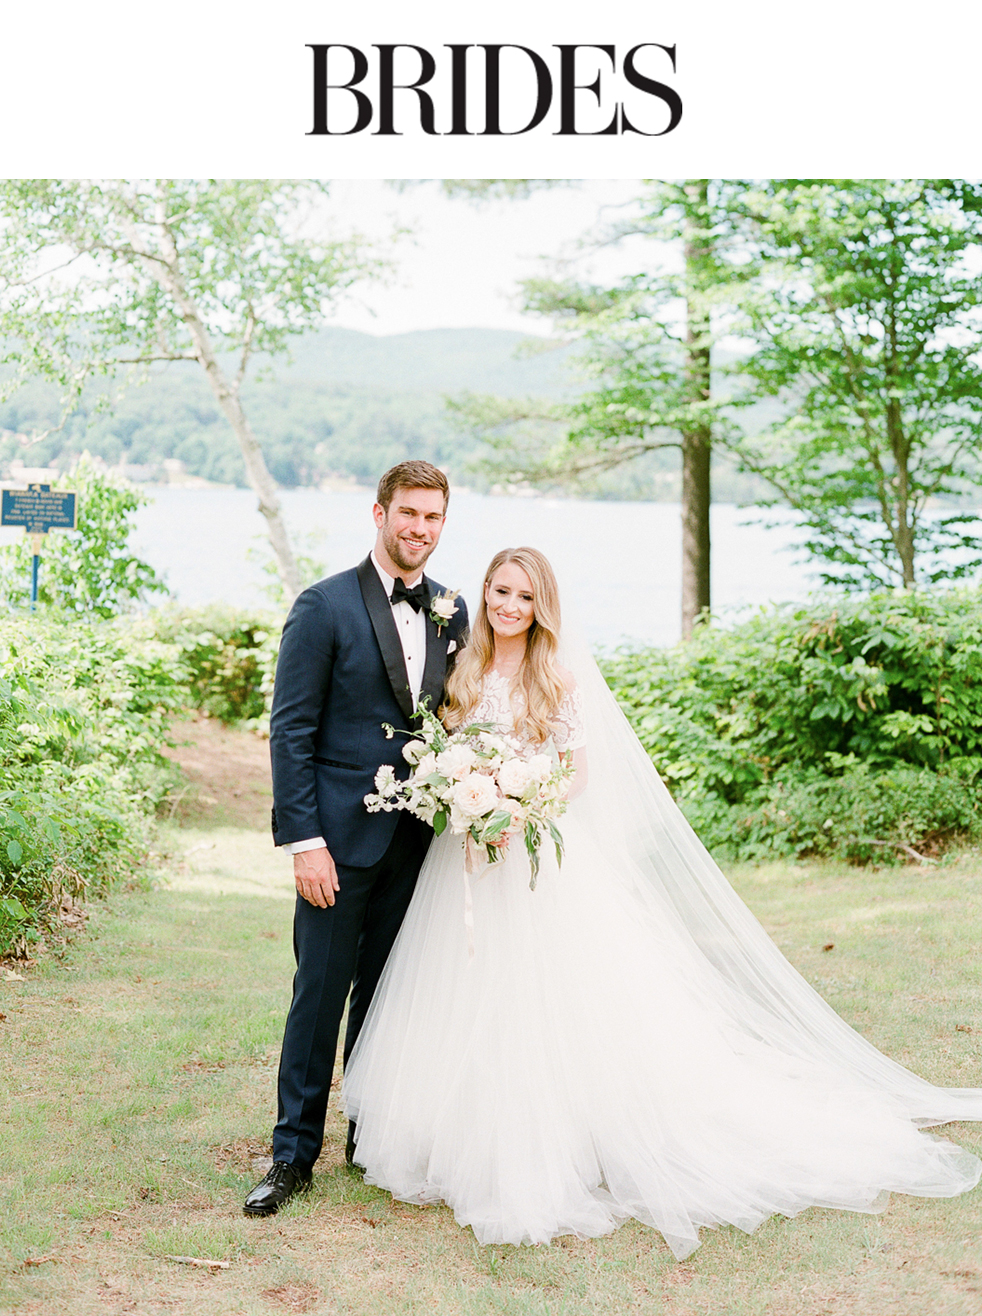 LakeGeorgeWedding-Featured-BRIDES.jpg